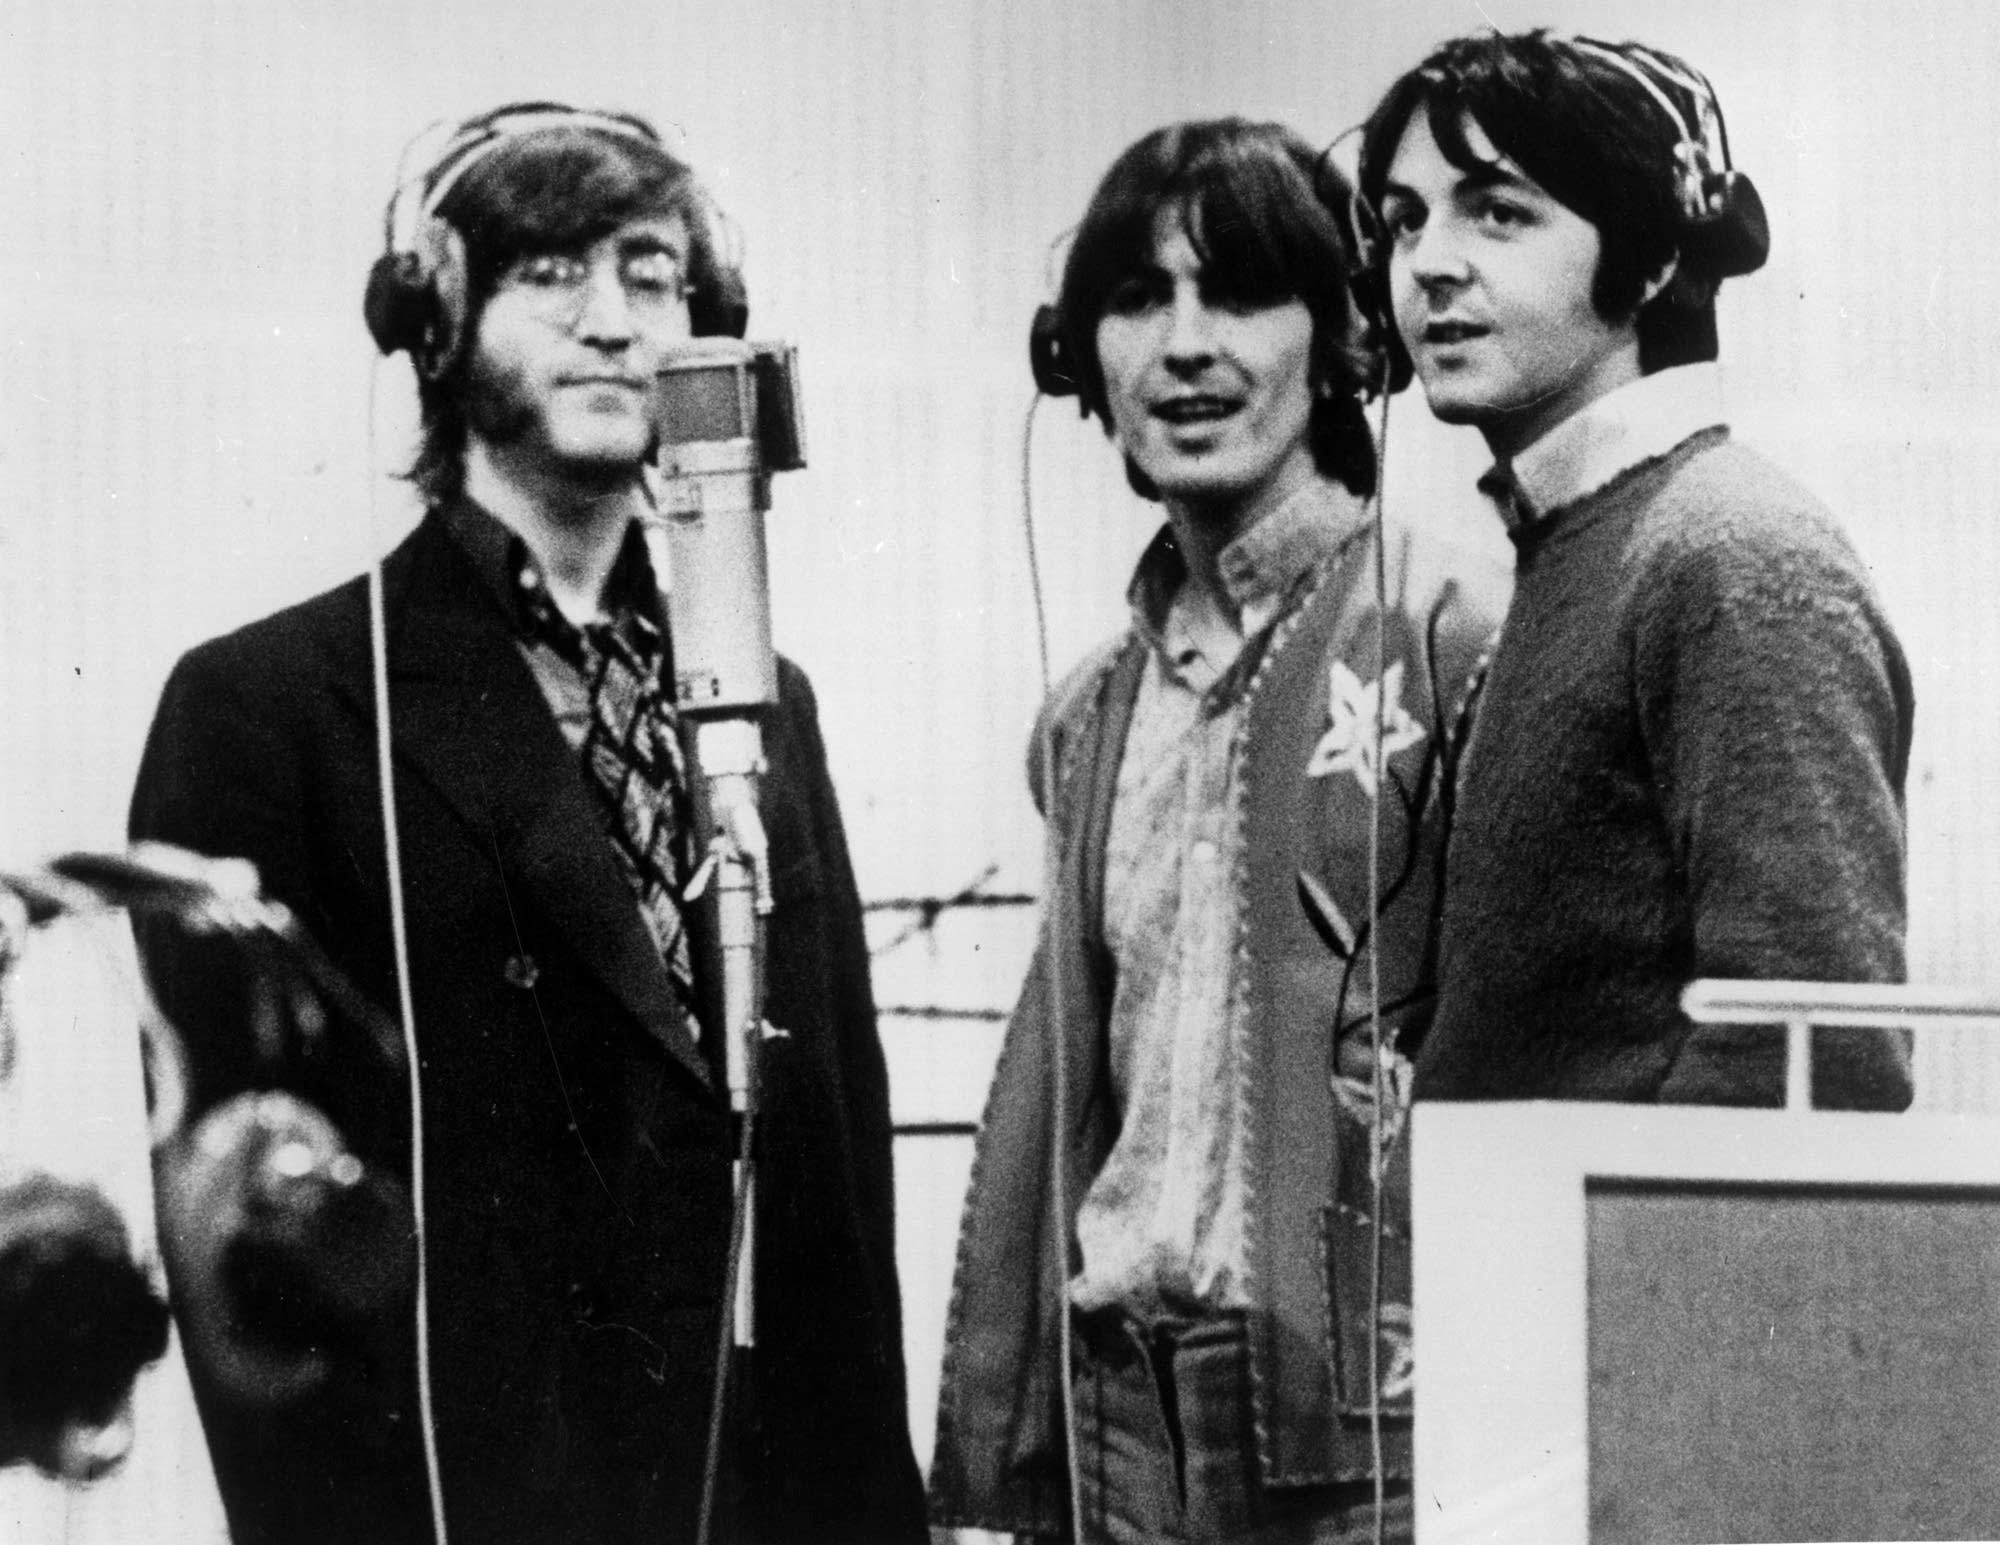 Mac Wilson Reflects On The Beatles White Album On Its 50th Anniversary The Current